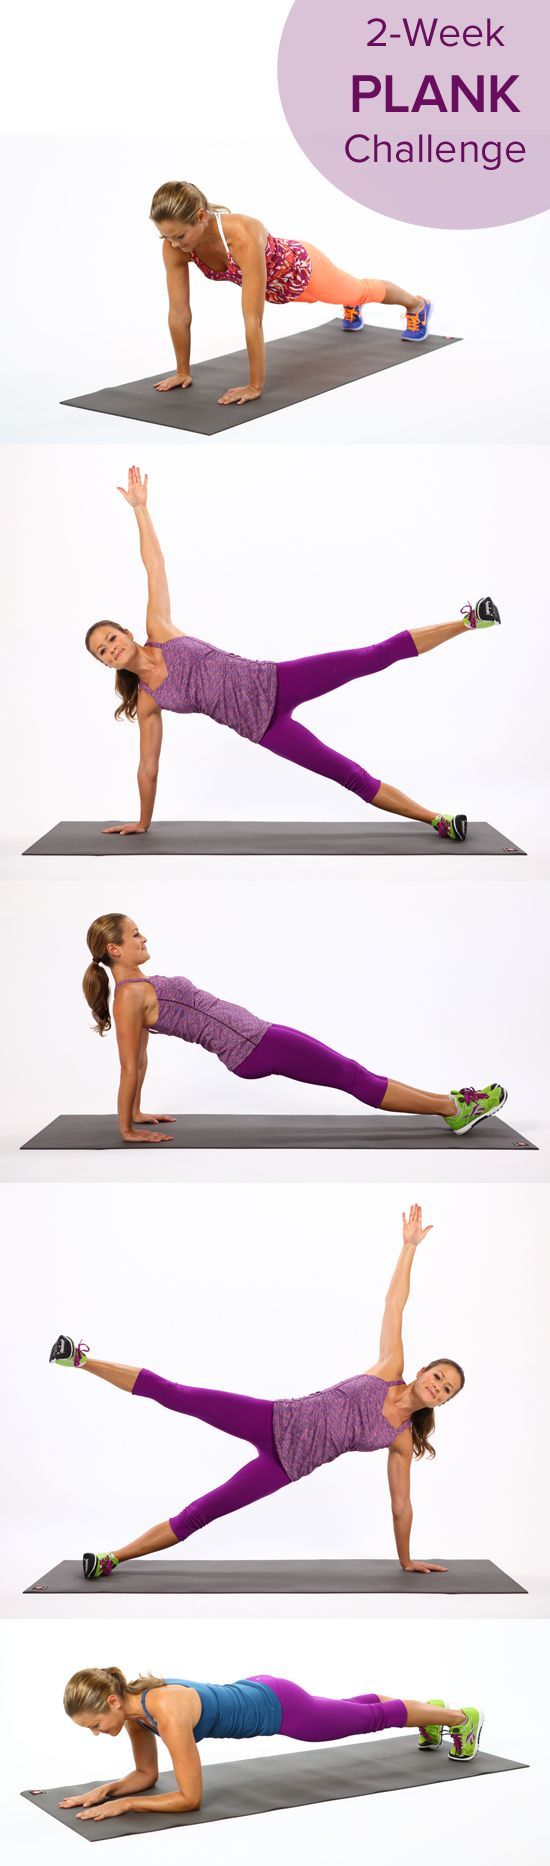 Quickly shred away belly fat and sculpt your stomach for sexier abs by doing this 2-Week Plank Challenge. Re-pin now, check later.